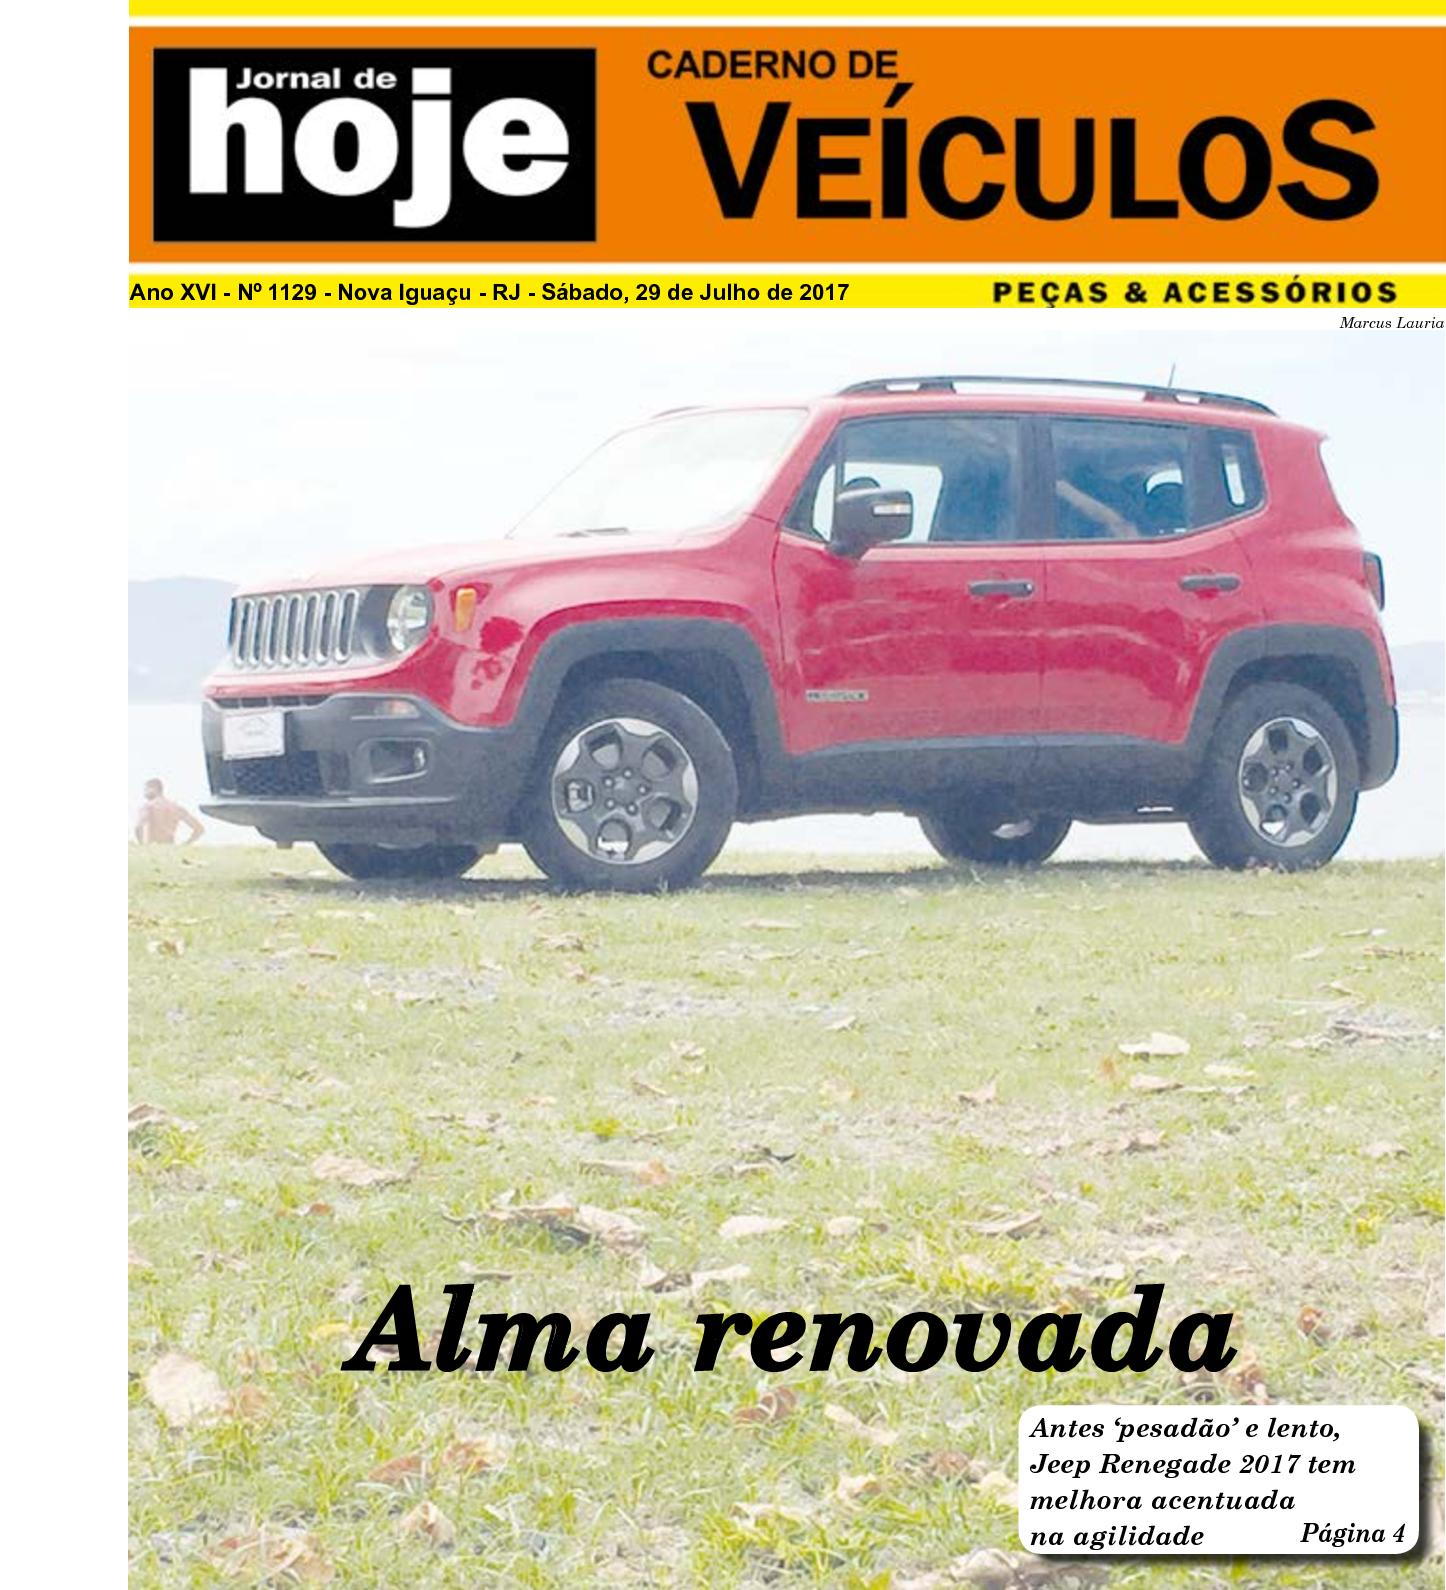 Veiculos 290717